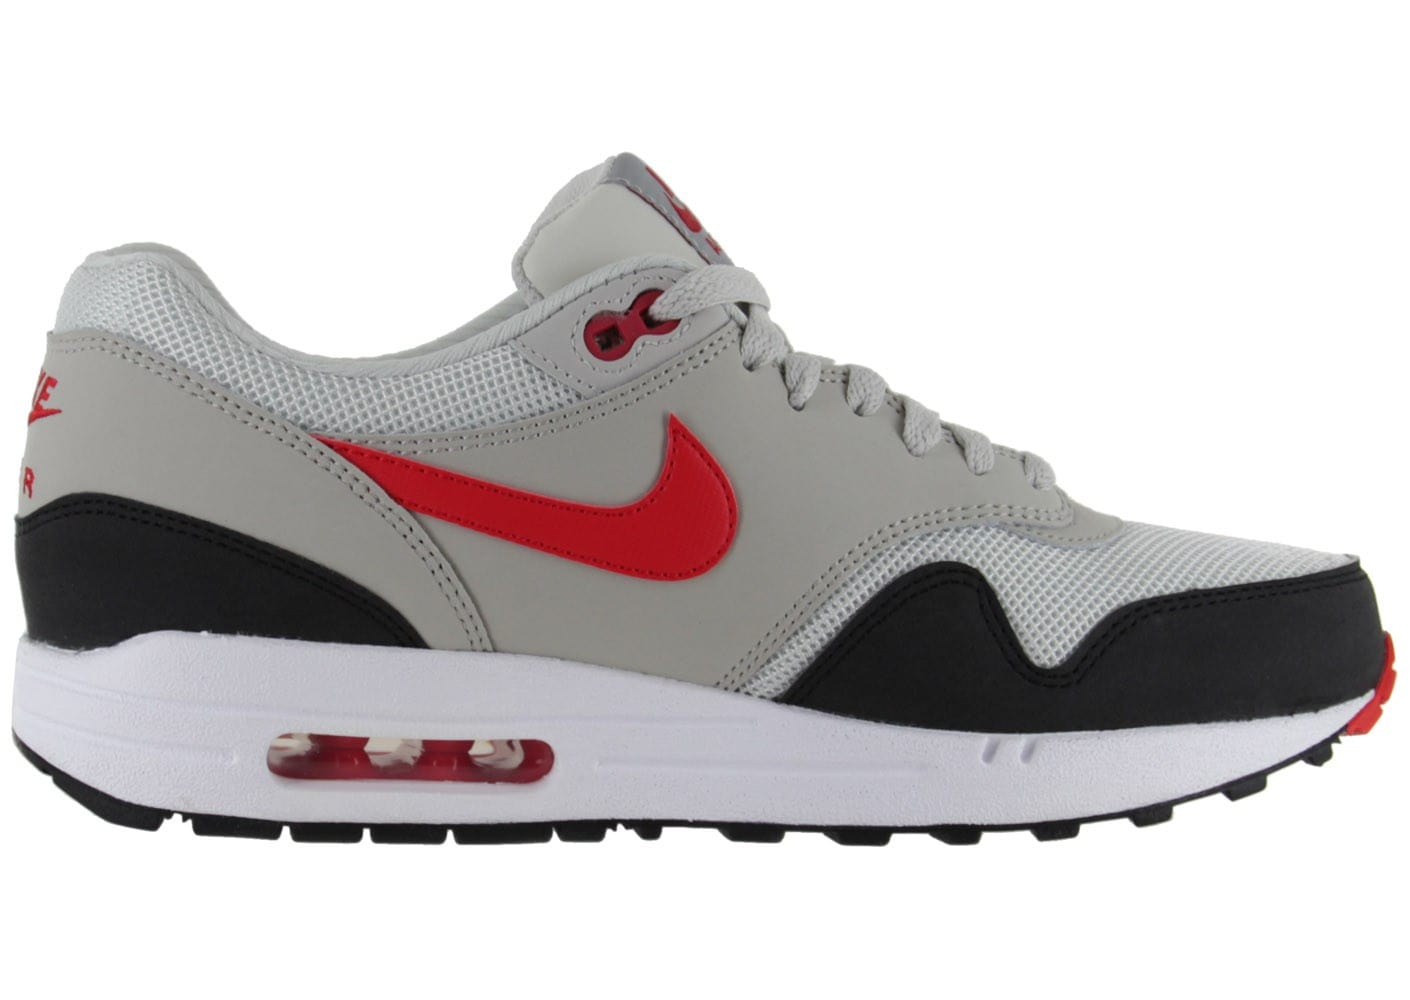 nike air max 1 essential blanche chaussures homme chausport. Black Bedroom Furniture Sets. Home Design Ideas